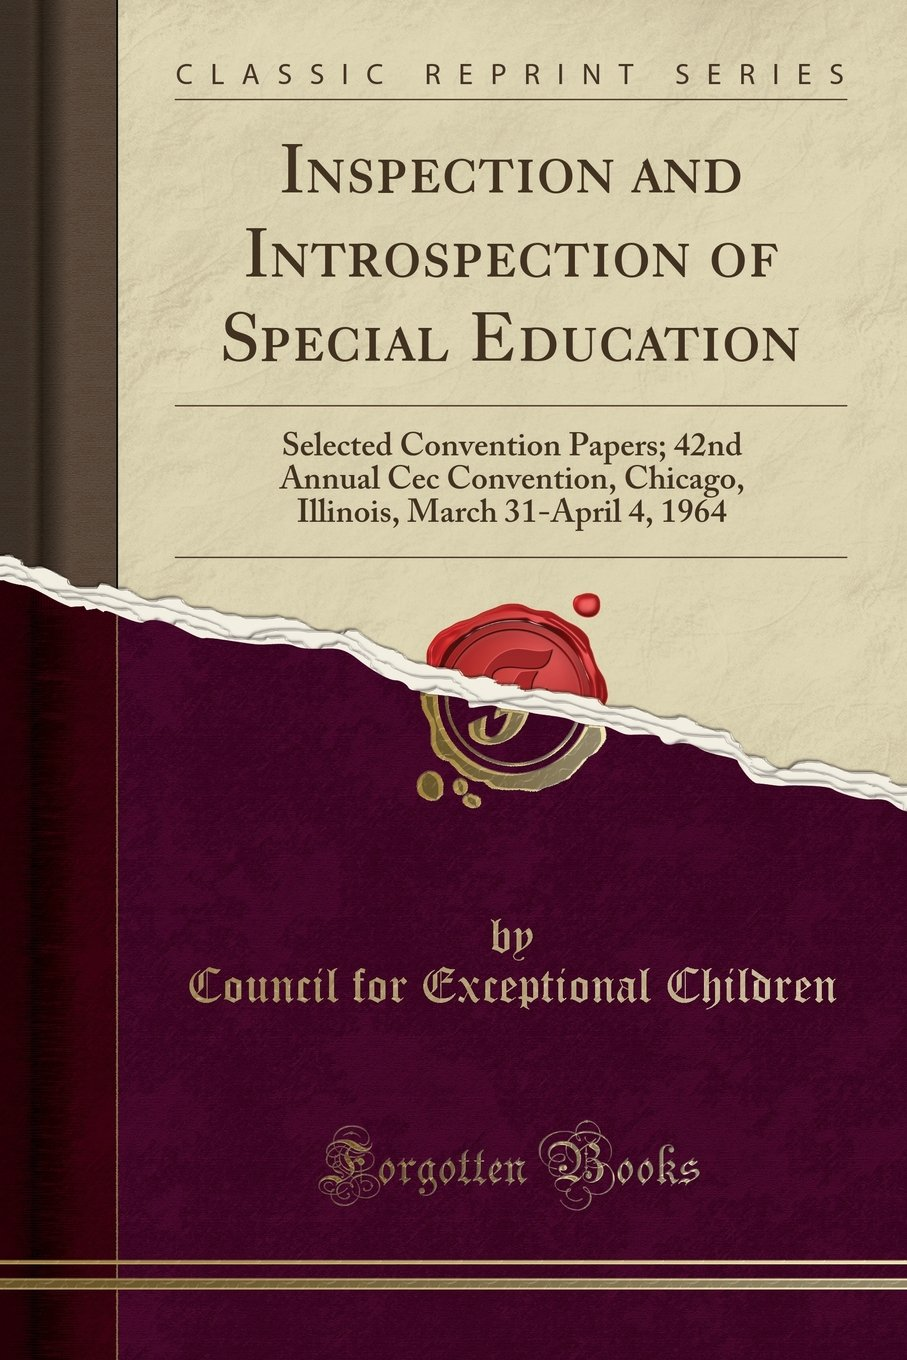 Inspection and Introspection of Special Education: Selected Convention Papers; 42nd Annual Cec Convention, Chicago, Illinois, March 31-April 4, 1964 (Classic Reprint) ebook